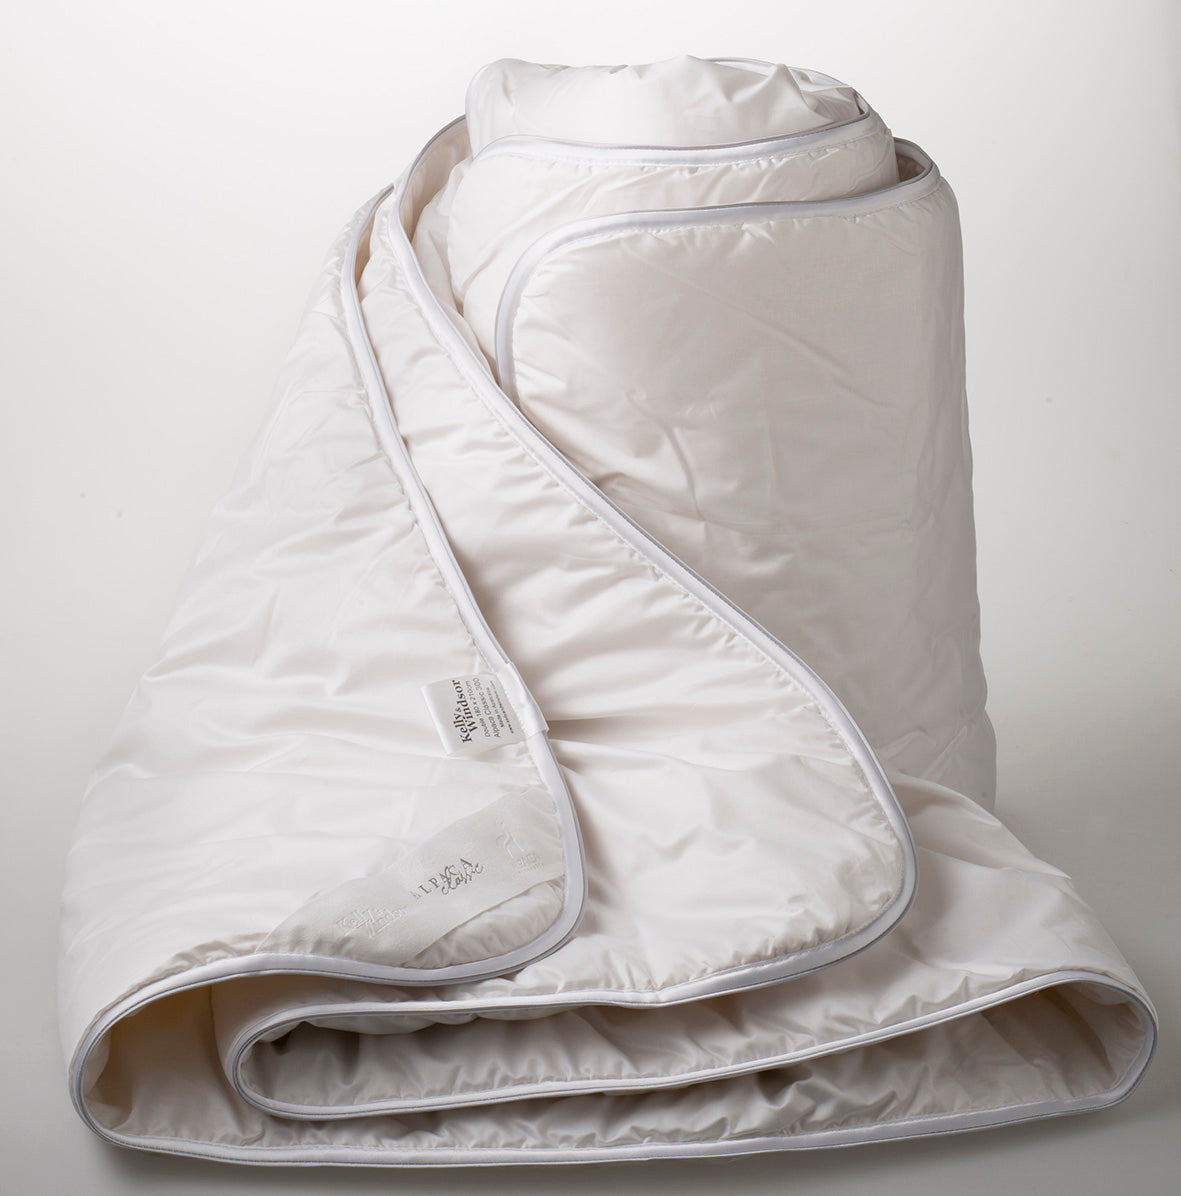 Kelly and Windsor Alpaca Bamboo 300 All Year Round Quilt SUPER KING|KING|QUEEN